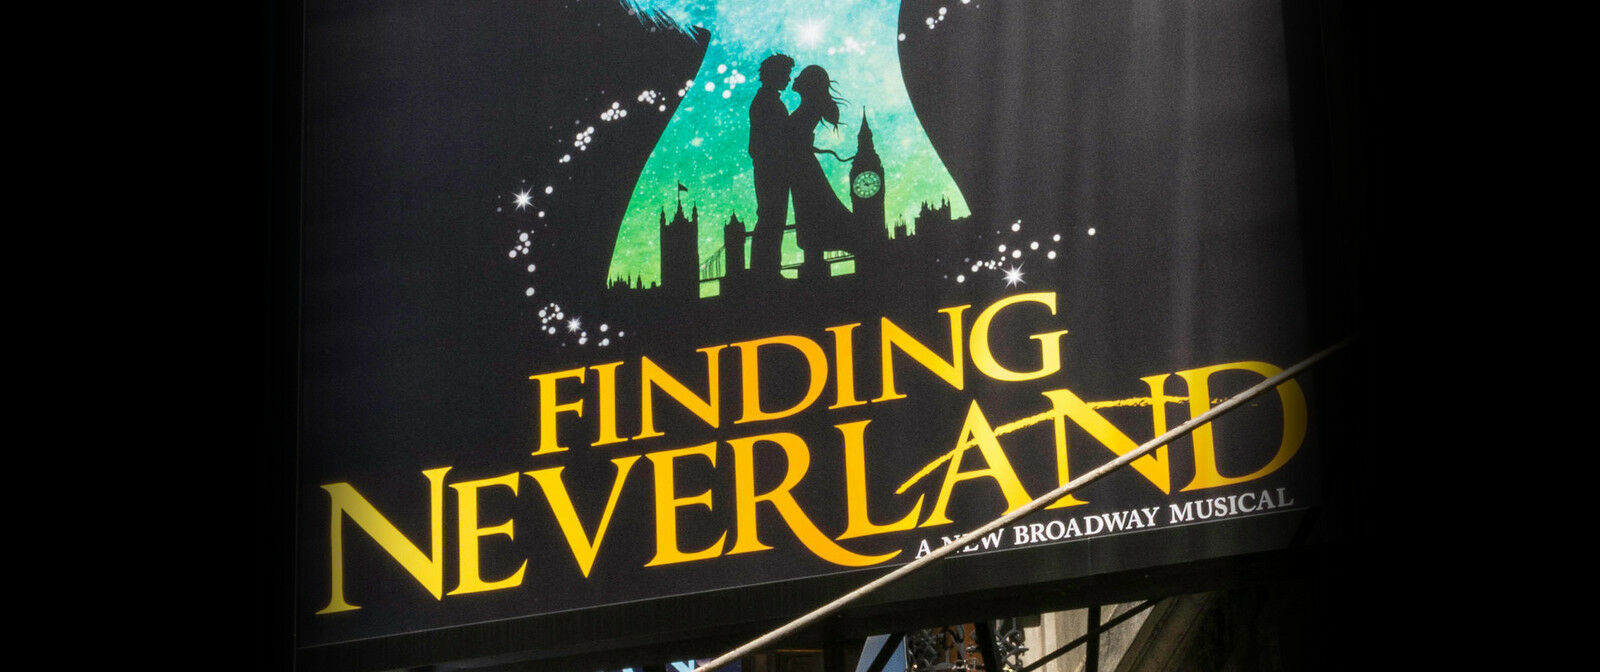 Finding Neverland Boston